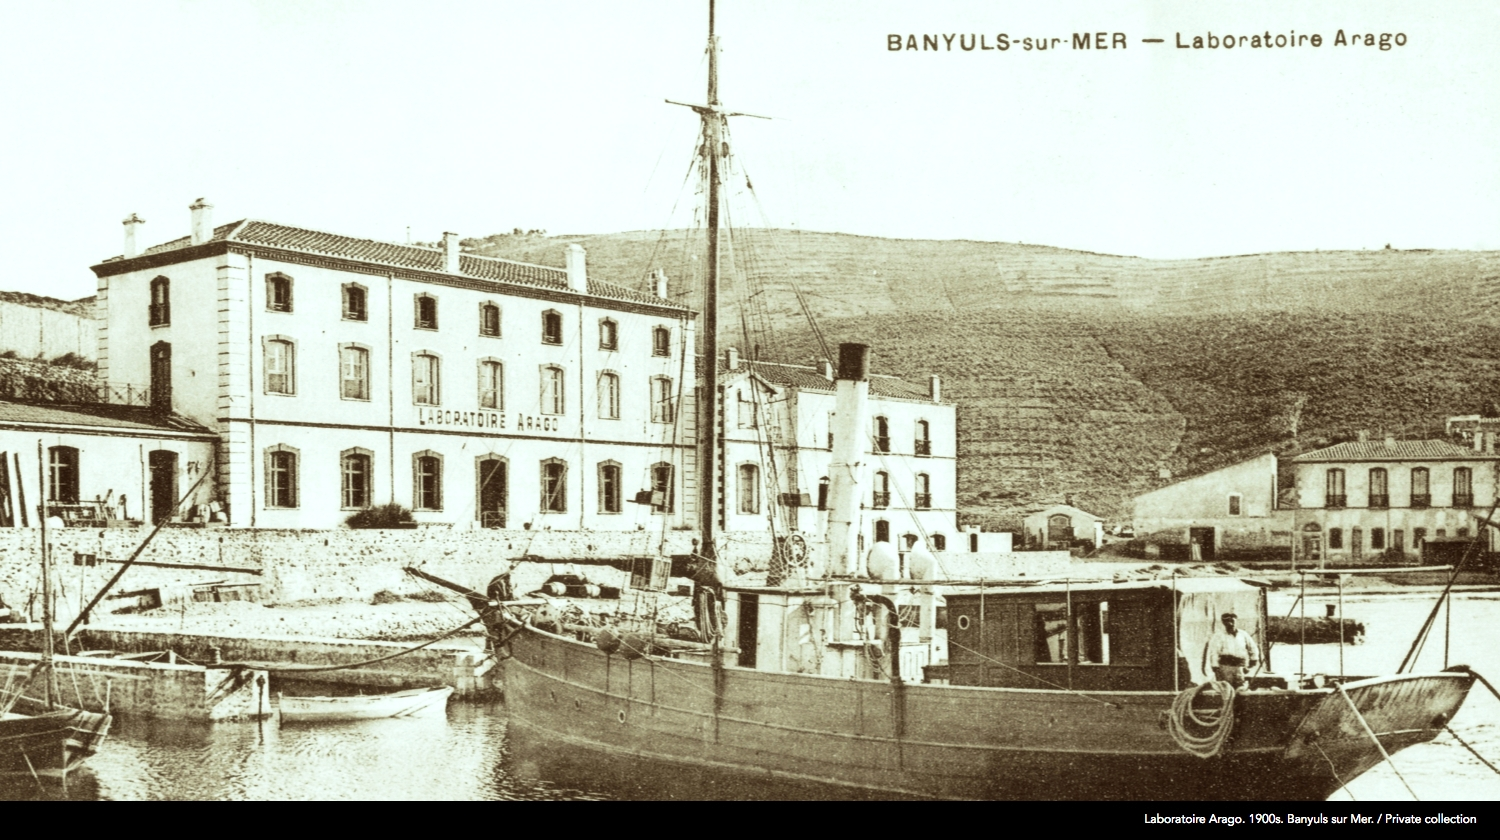 The not so distant past of coastal marine sciences: small isolated field stations, distant from urban centres, associated with summer tourism and seaside amusements.  Early 20th century view of the  Laboratoire Arago  in  Banyuls-sur-Mer , founded by  Henri de Lacaze-Duthiers  in 1882. A public aquarium is located on the ground floor of the main building and the station's boats are moored in front, including their second steam-driven boat (the 'Roland' II) in the foreground. Tourists and visitors stayed at the ' Grand Hôtel ' pictured in the background. [Postcard, Private collection]